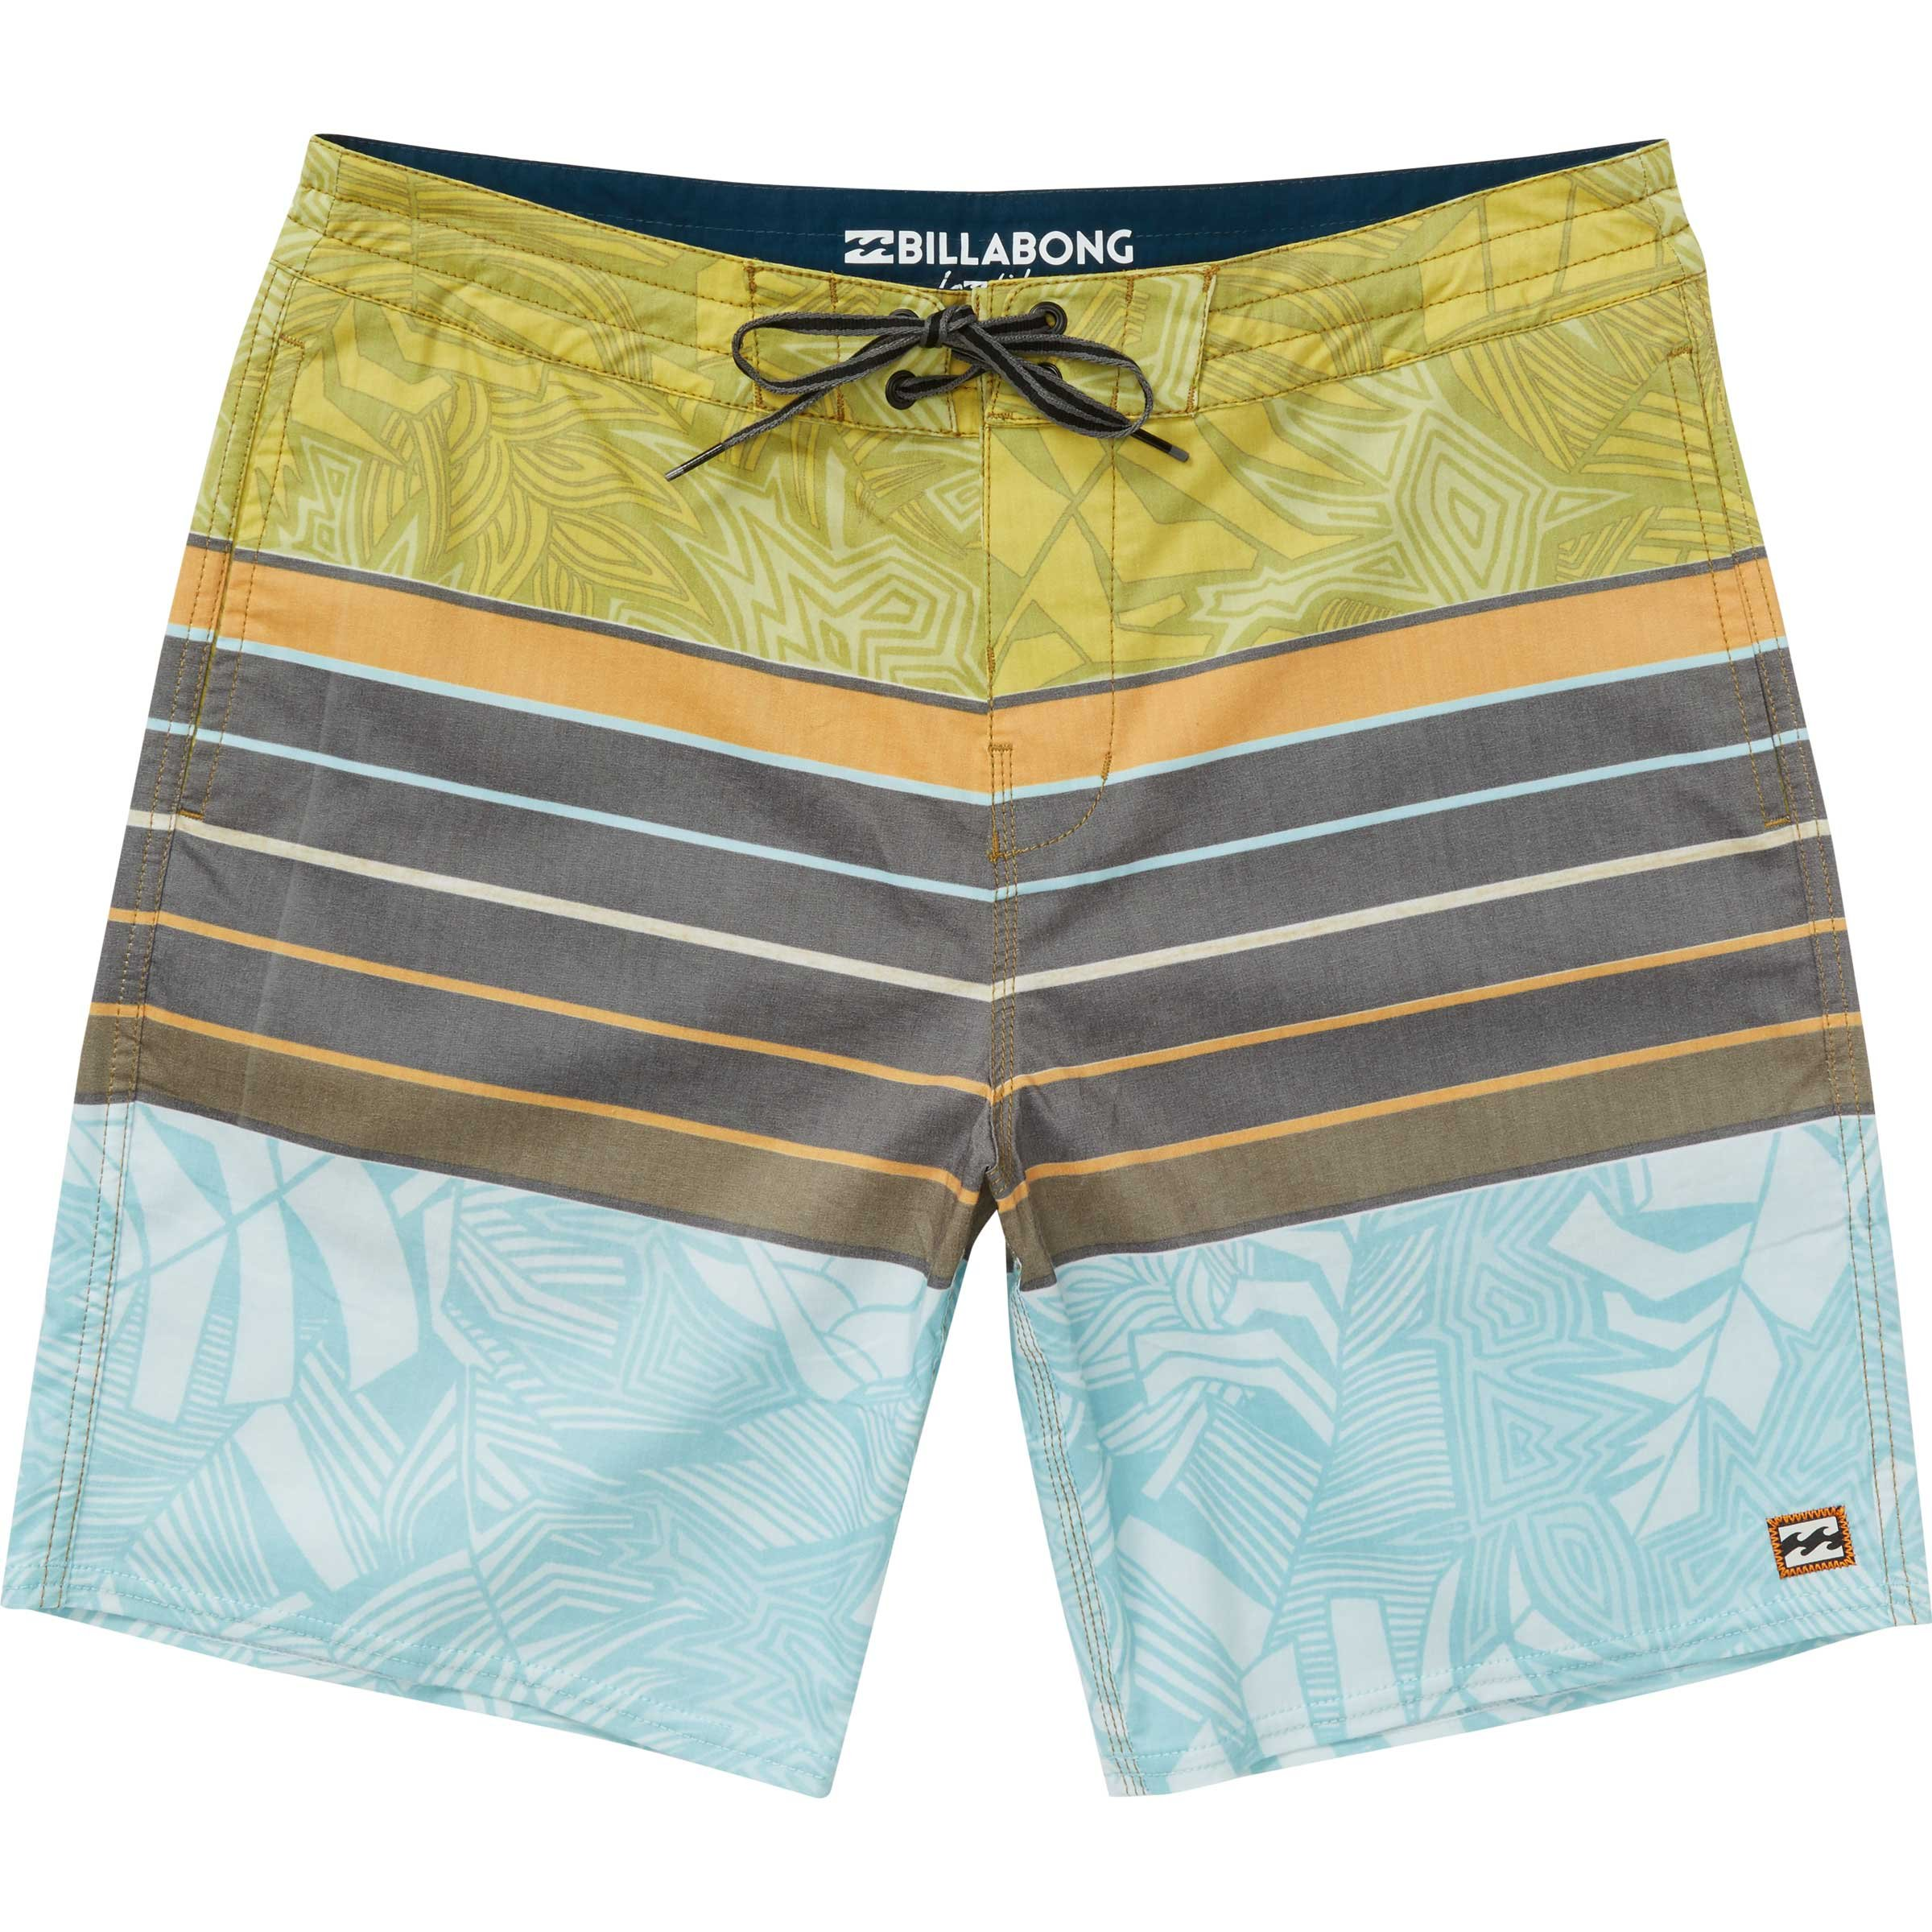 Billabong Men's Stringer Lt Boardshort, Mustard, 34